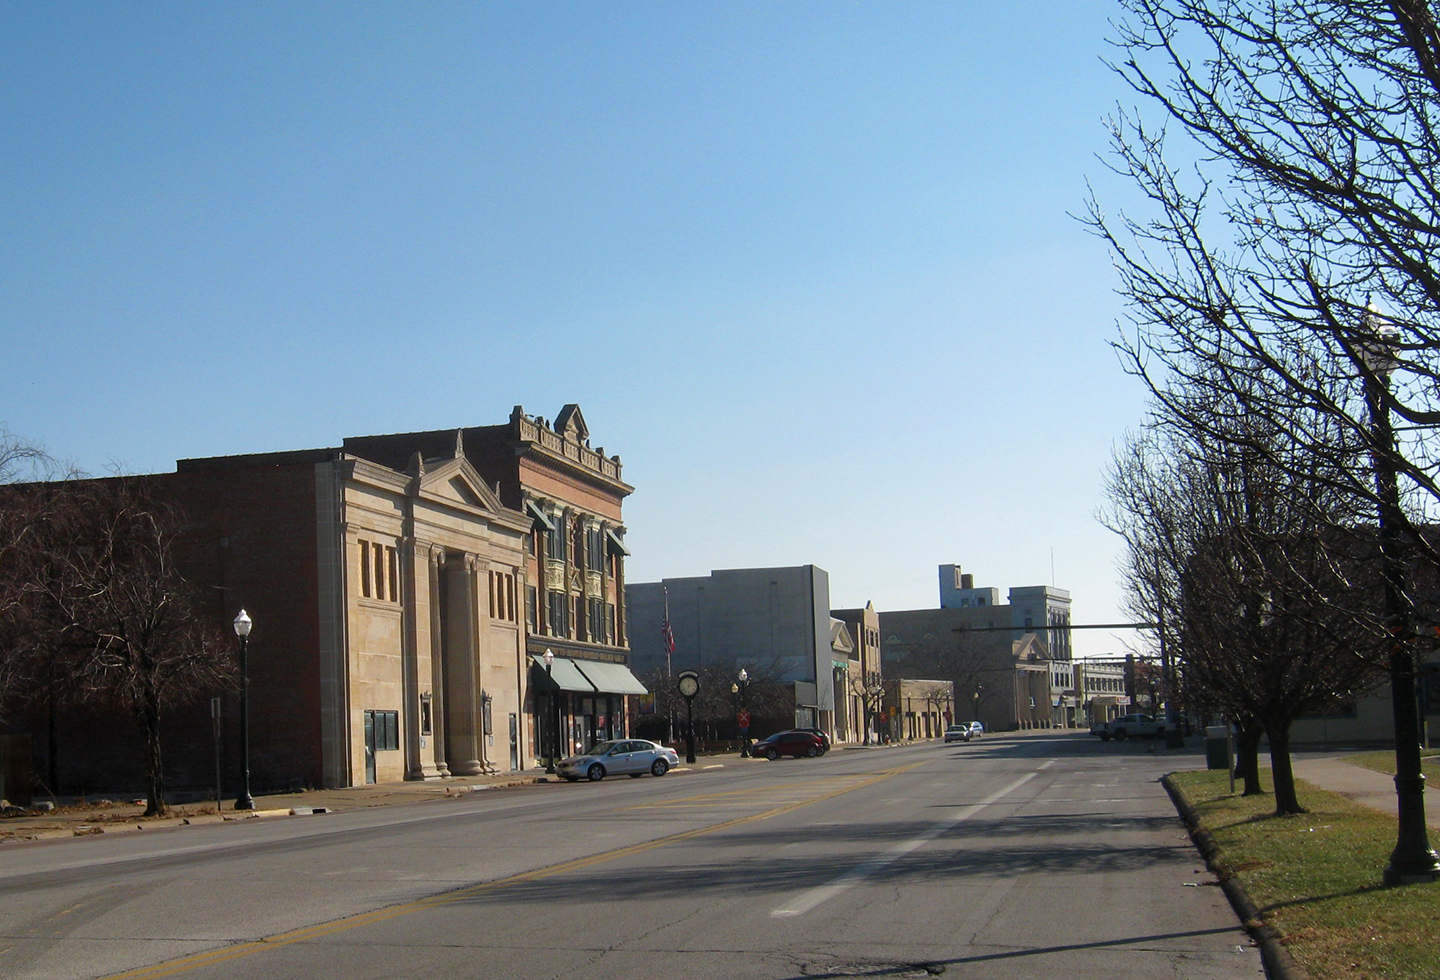 2011 04 01 archive in addition Landmarks 20Cleveland 20West 20Park as well mercial Break Steyven G Curry Art Show furthermore Good Italian Restaurant Review Of Sauce Pizza Wine further File Downtown Hemet   Harvard St at Florida Ave   Sunrise. on downtown lorain then